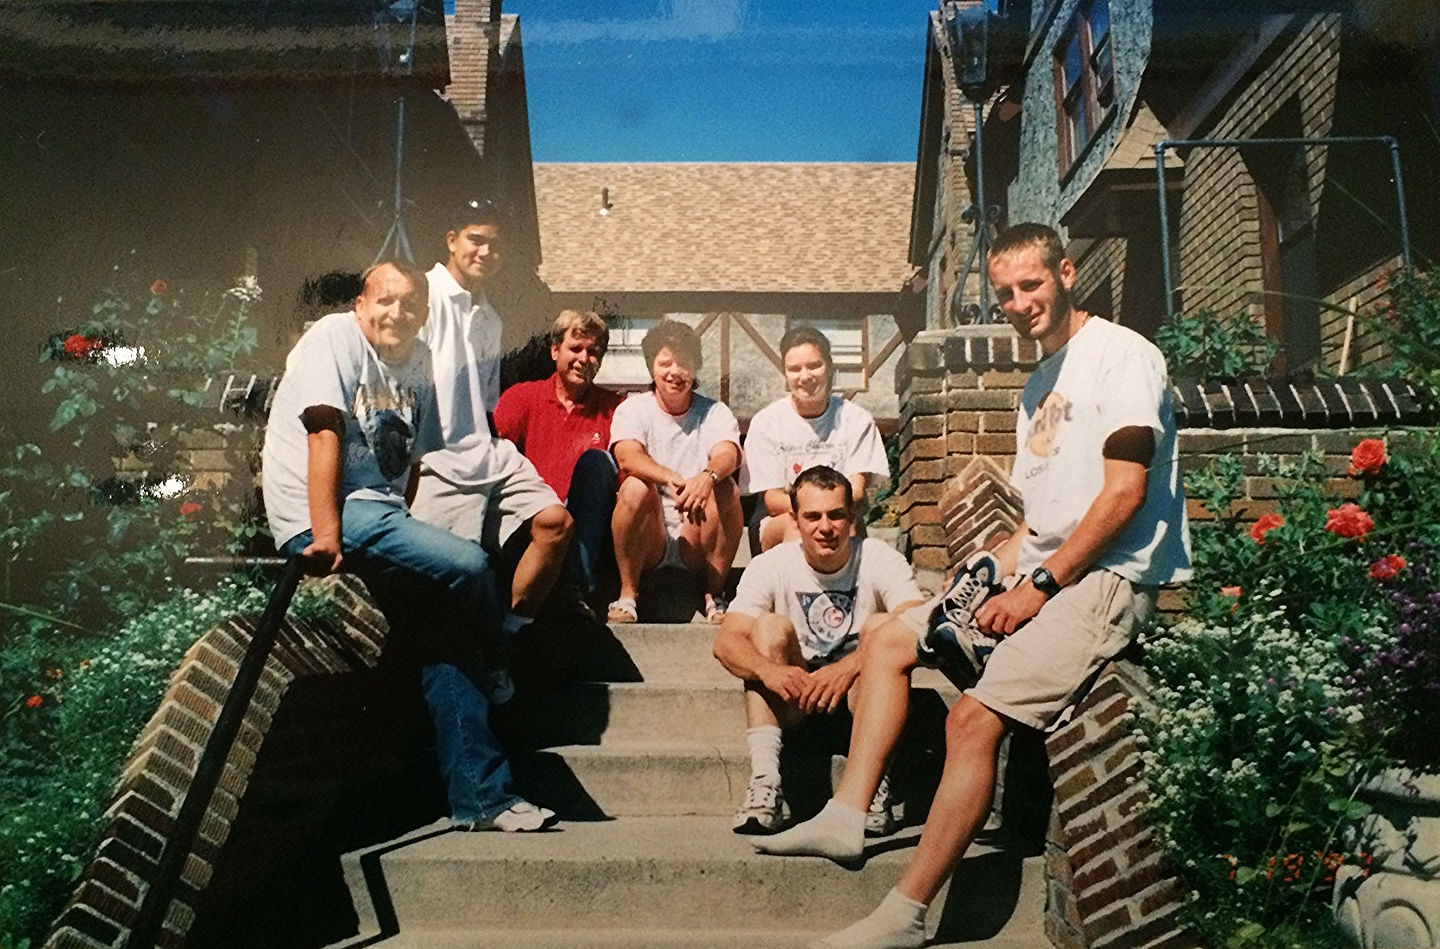 outside our first apartment in Wenatchee with the friends who helped us move out